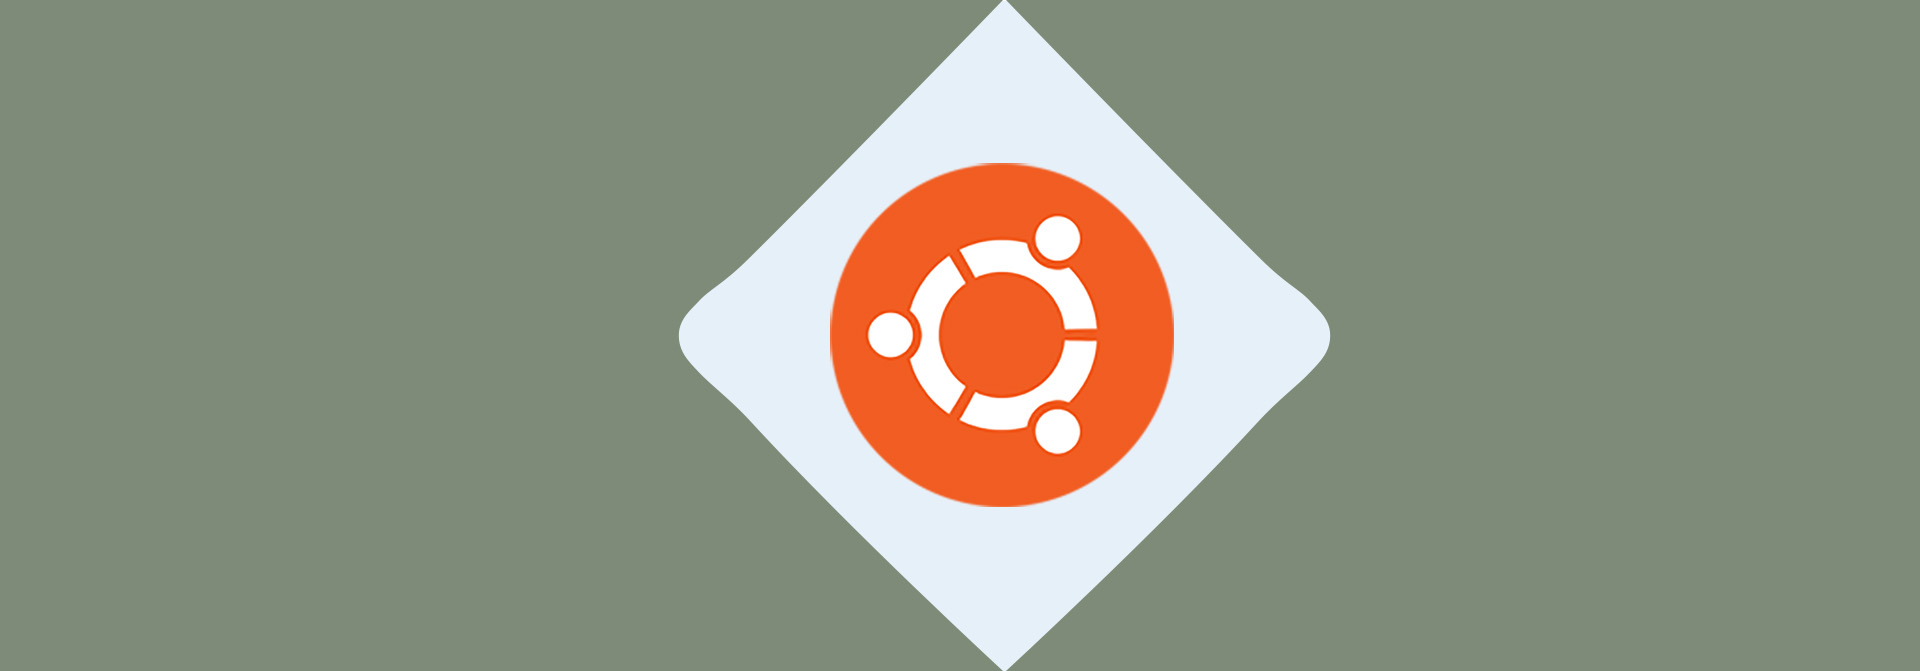 How To Change Icons Size And Position In Ubuntu 20.04 LTS